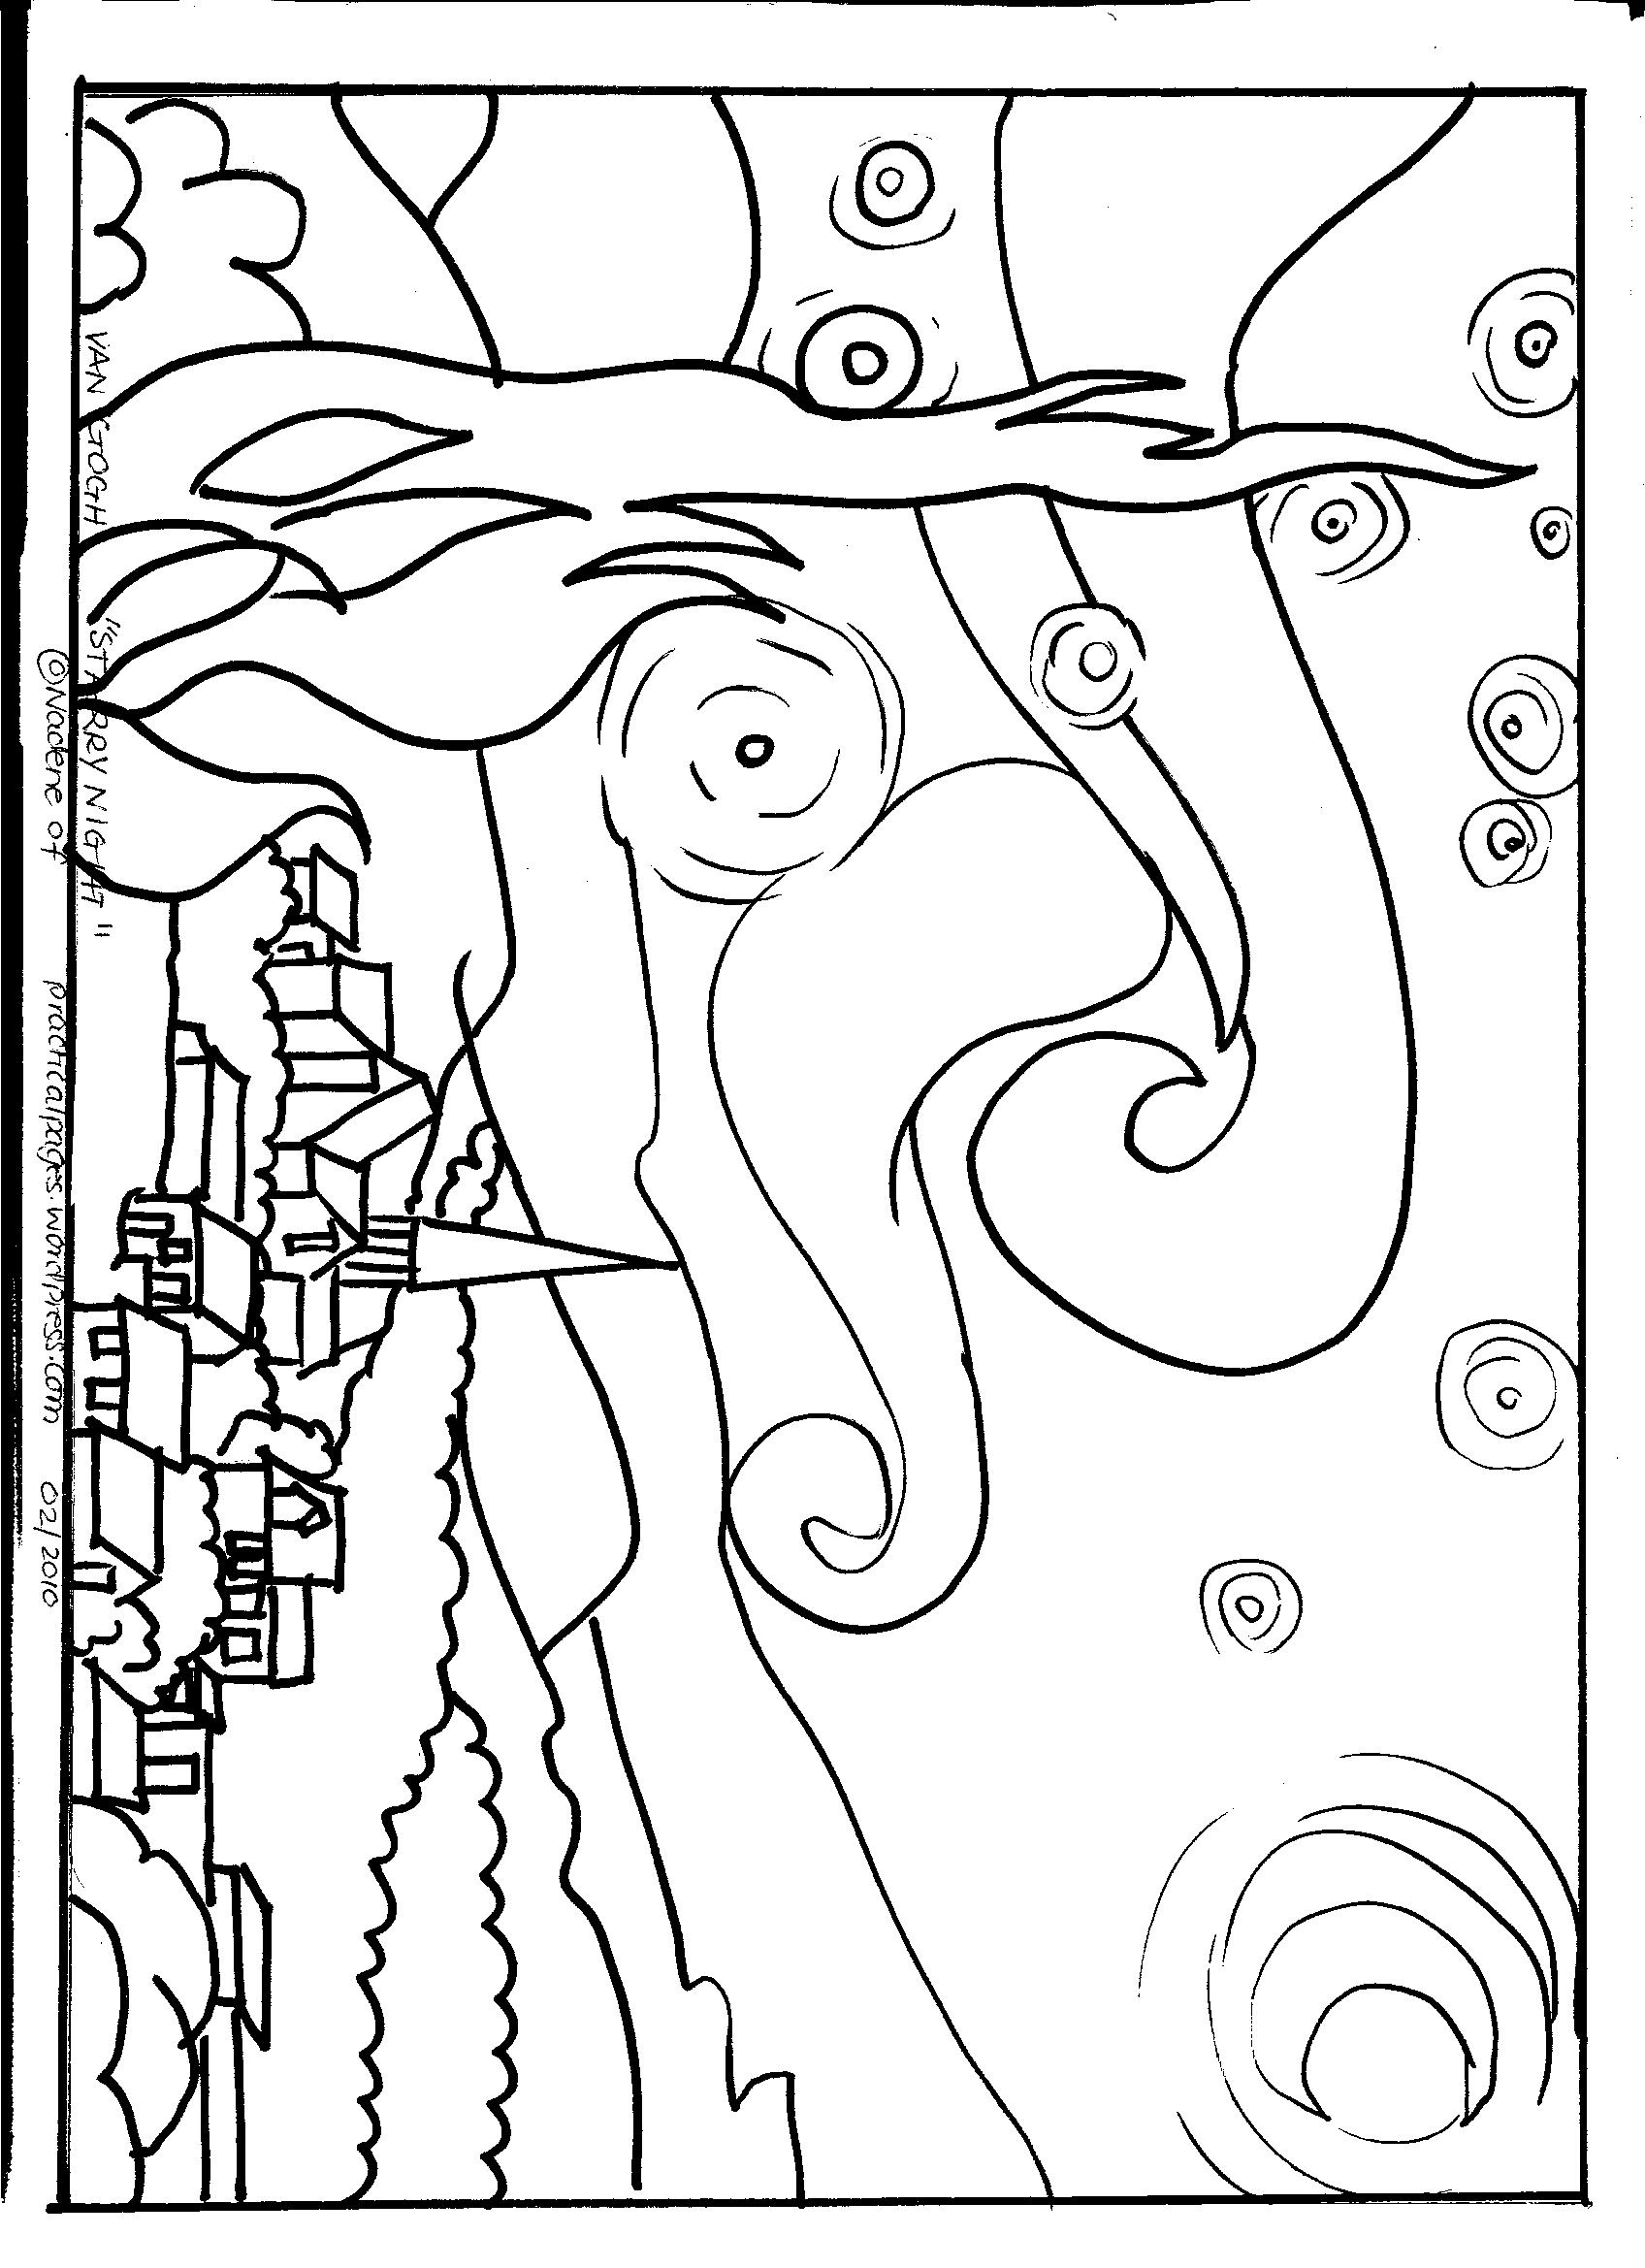 starry night coloring page - 4 best images of printable line art christmas poinsettia